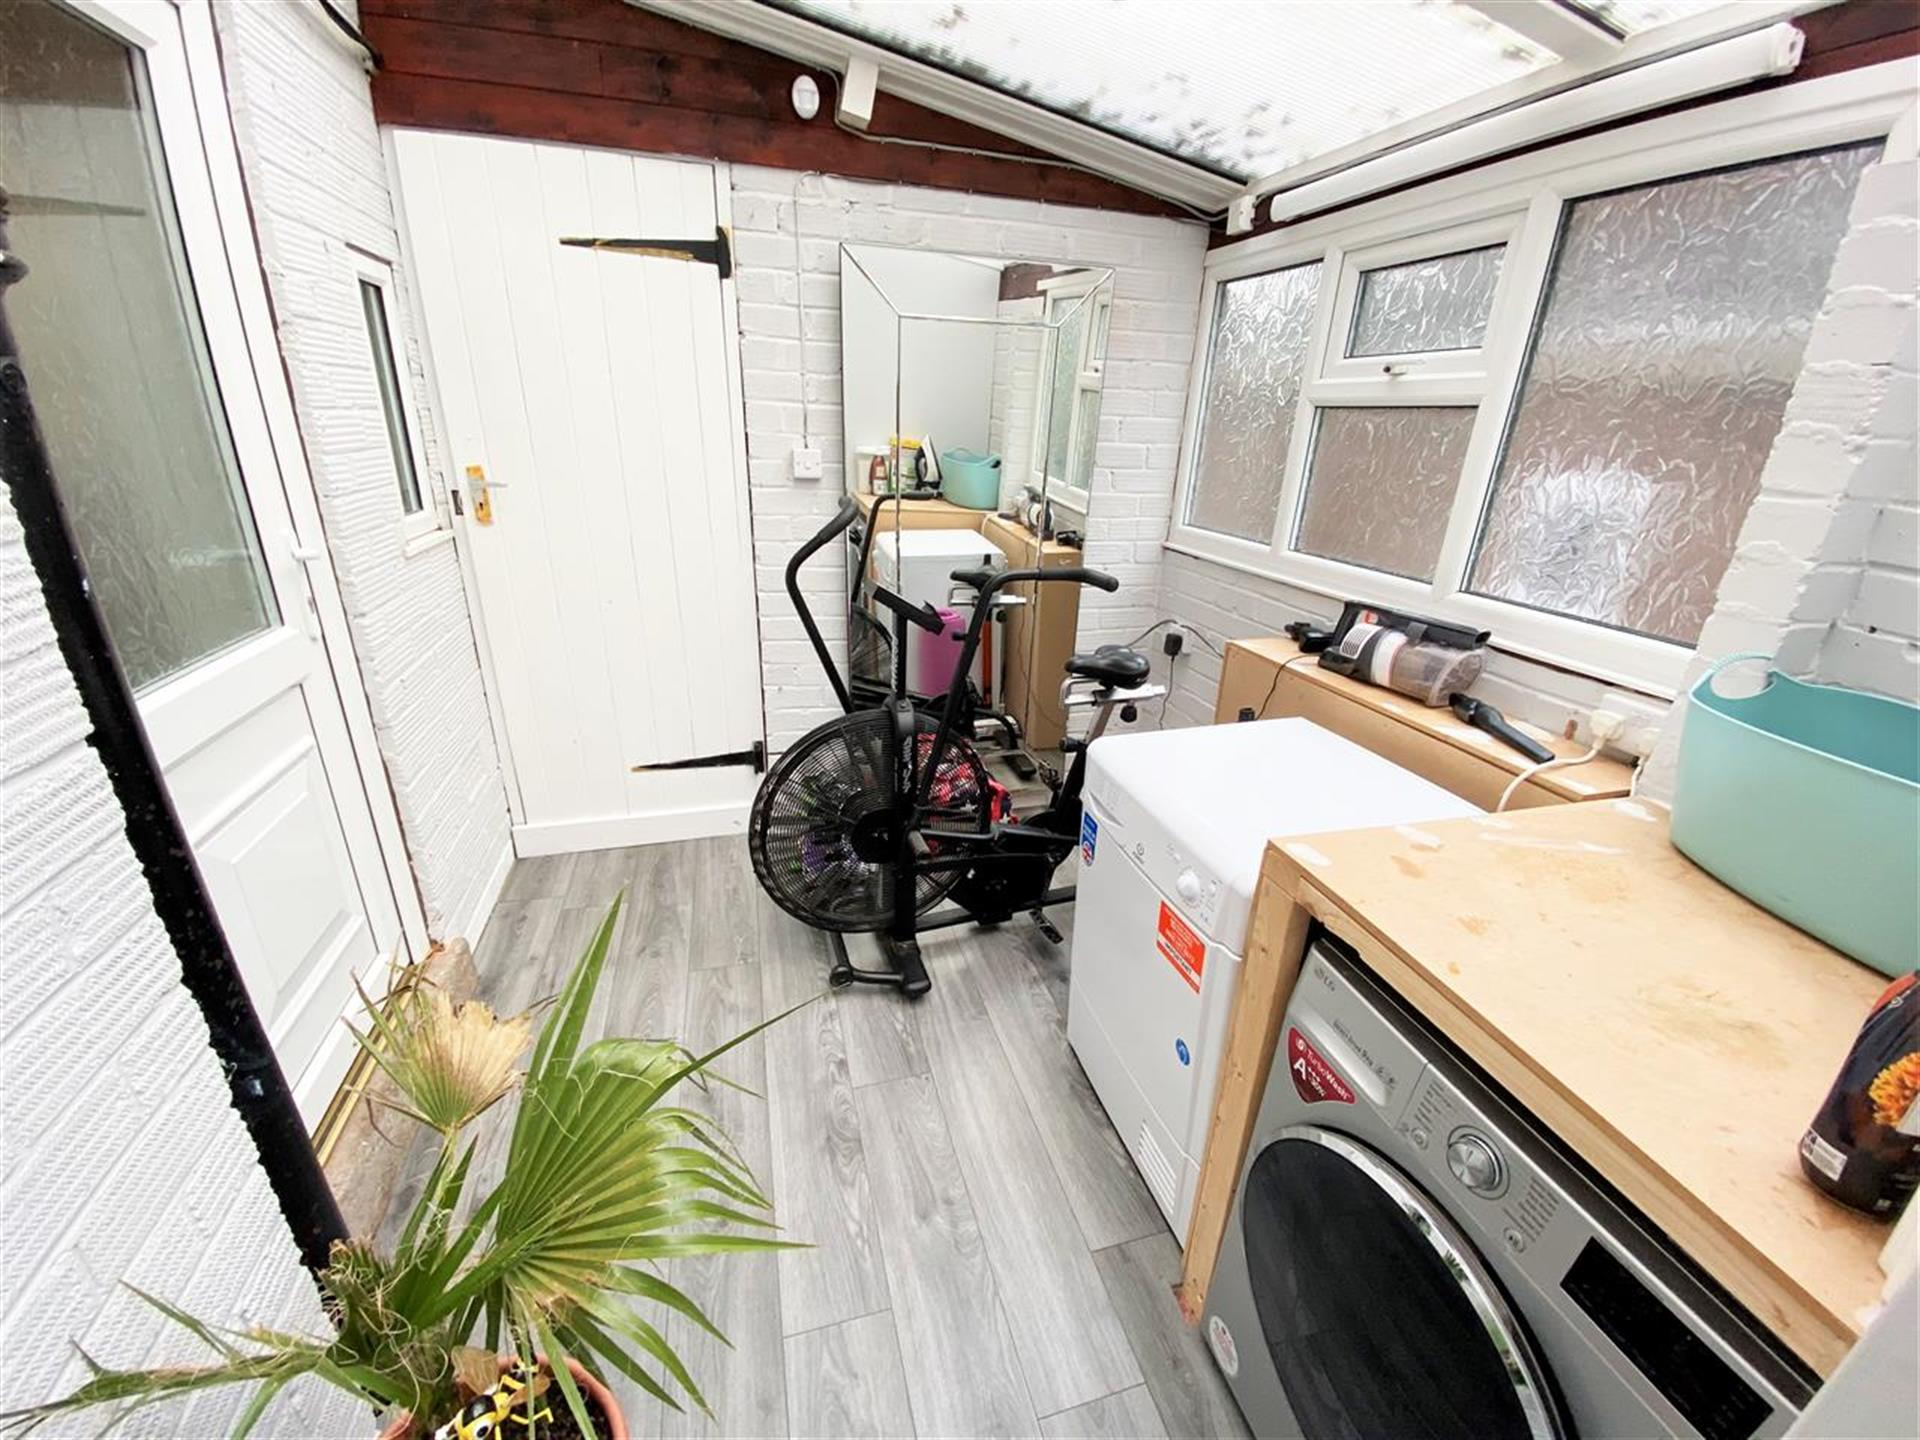 3 Bedroom Semi-detached House For Sale - Utility